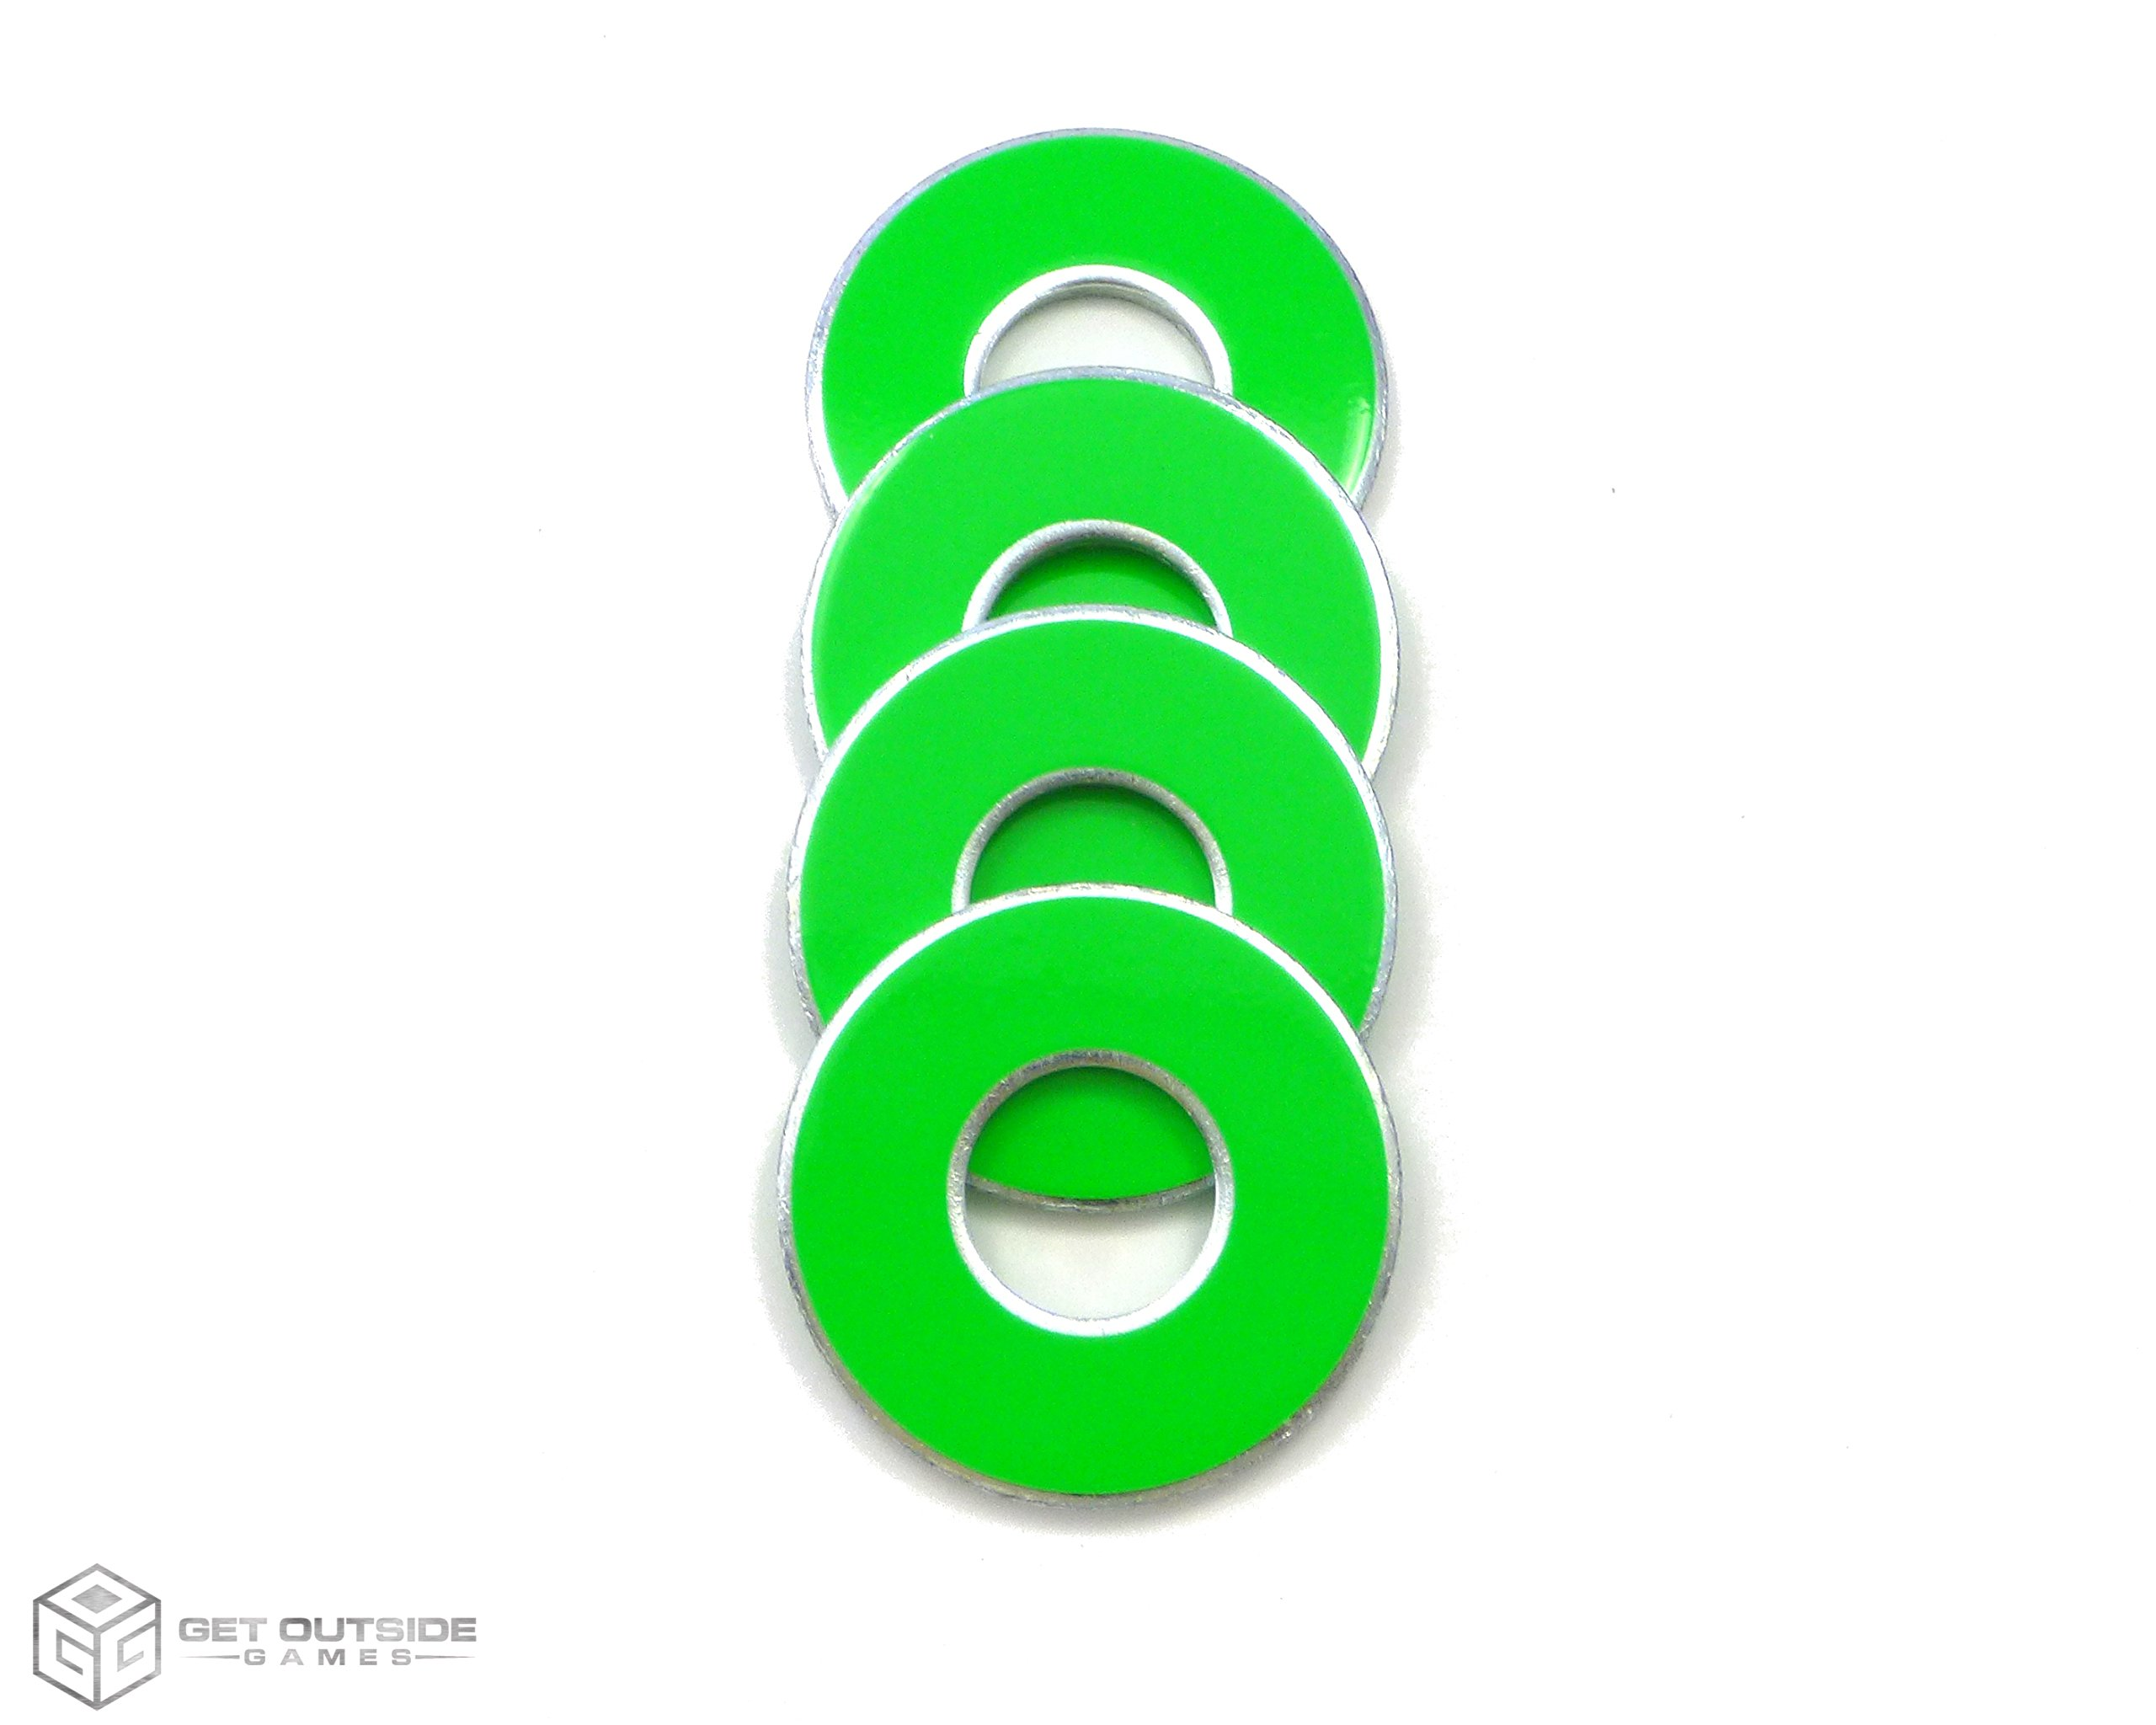 Get Outside Games 4 Neon Fluorescent VVashers - Washer Toss/Washer Game Washers - 5 Colors (Green, 4 VVashers) by Get Outside Games